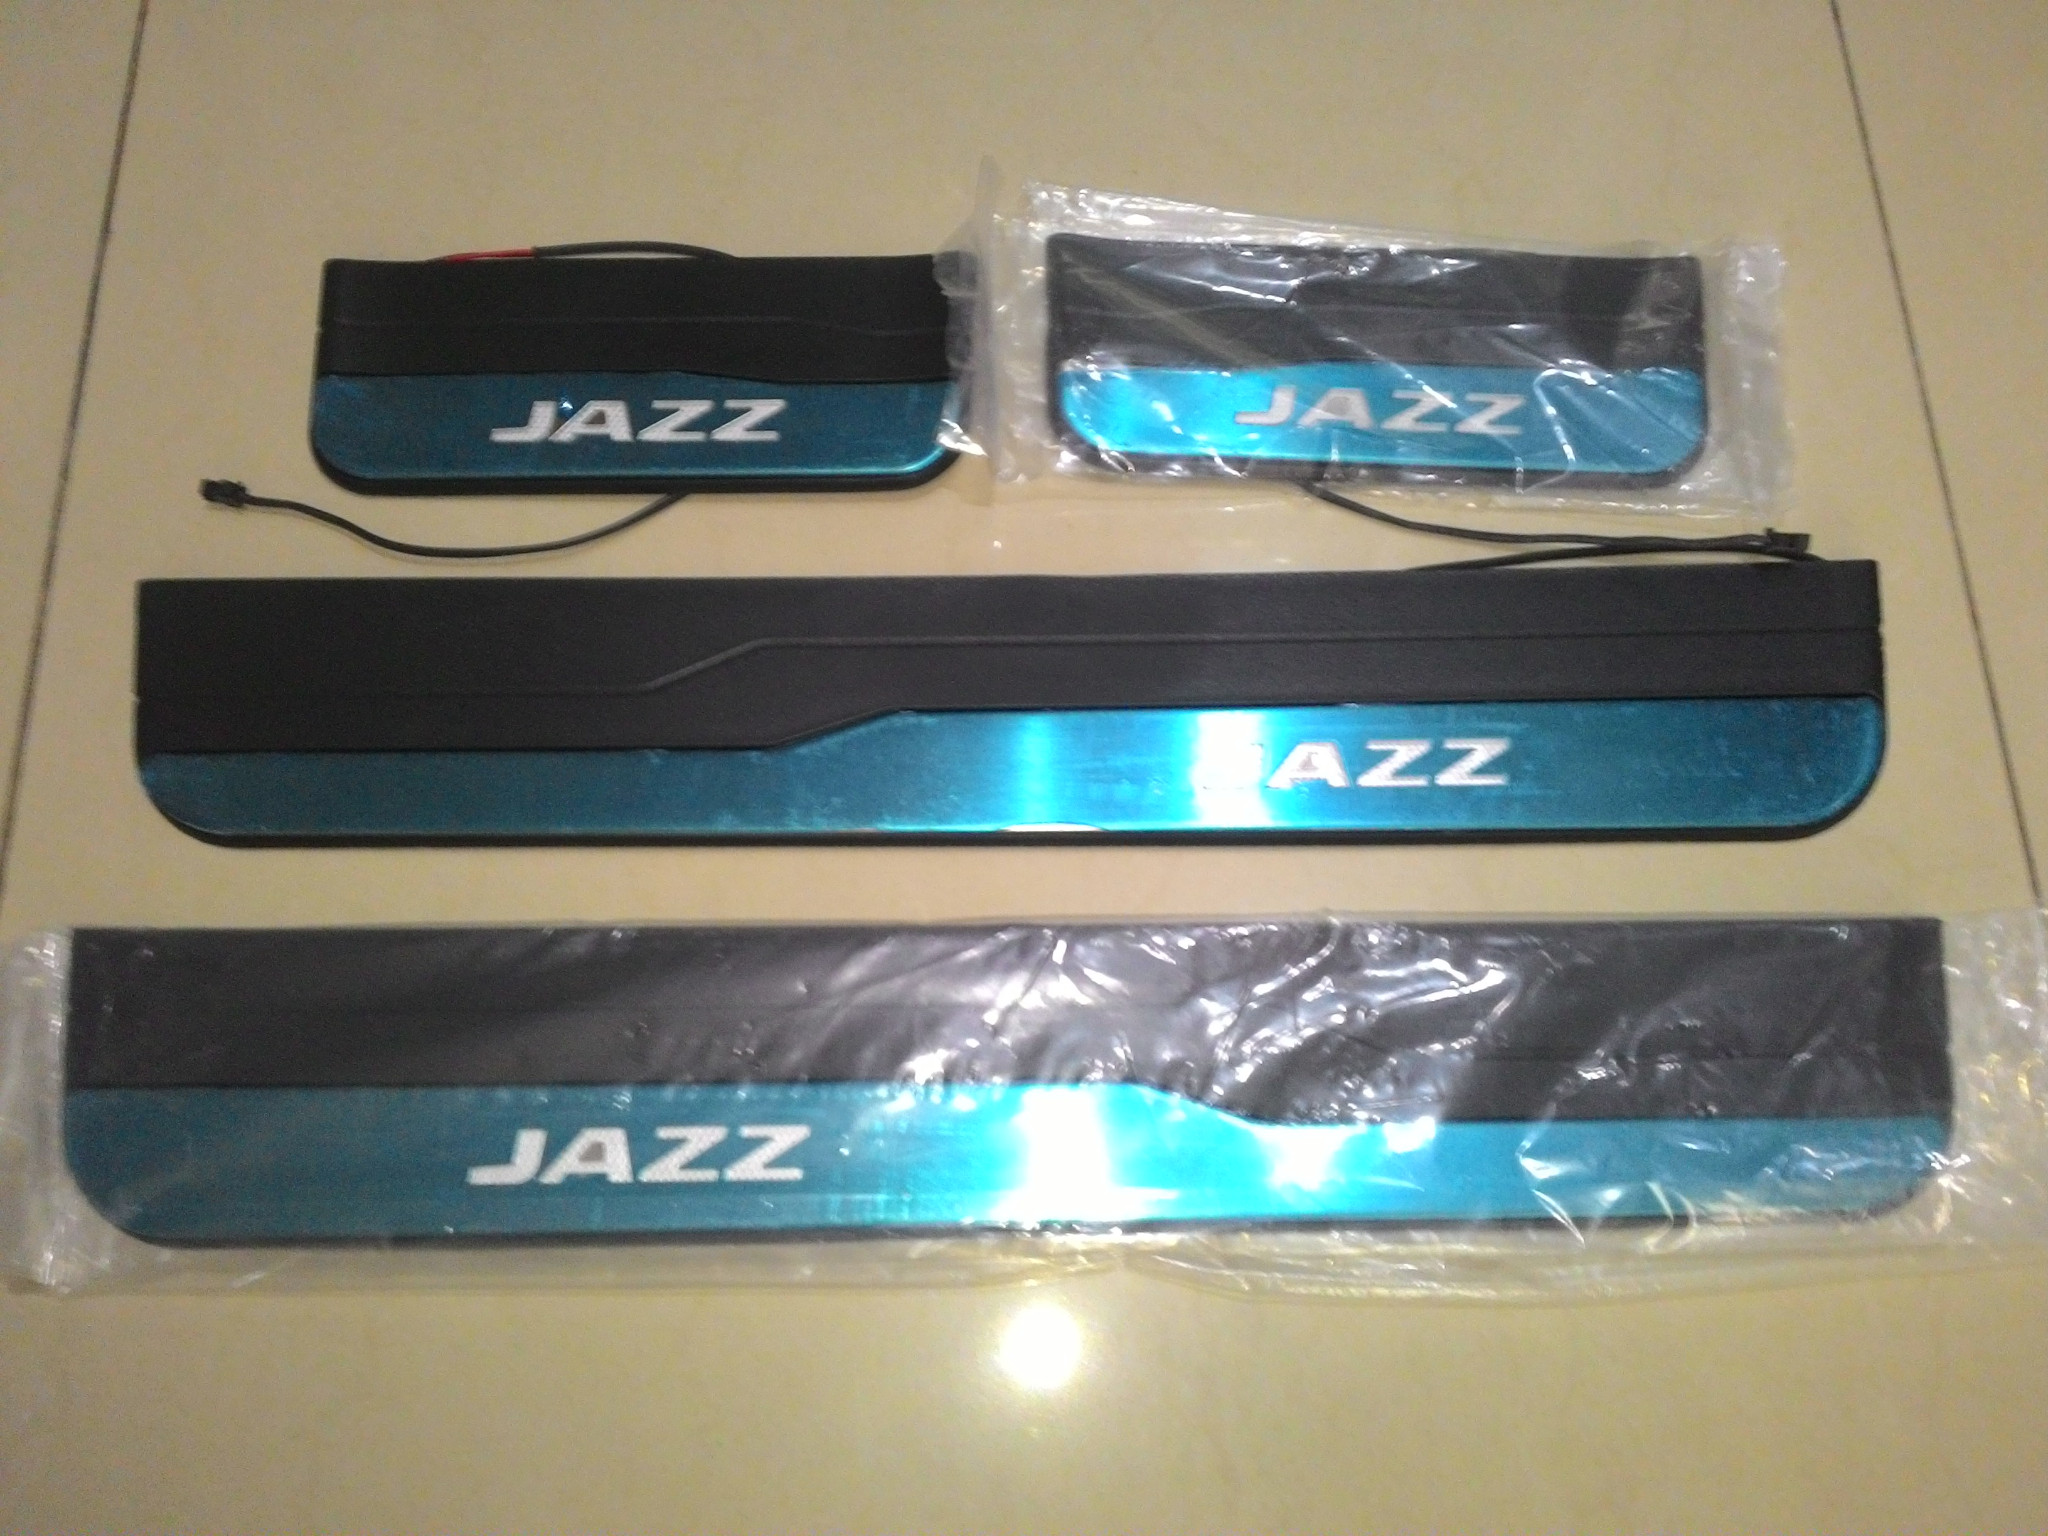 Sillplate Samping Kombinasi LED Jazz